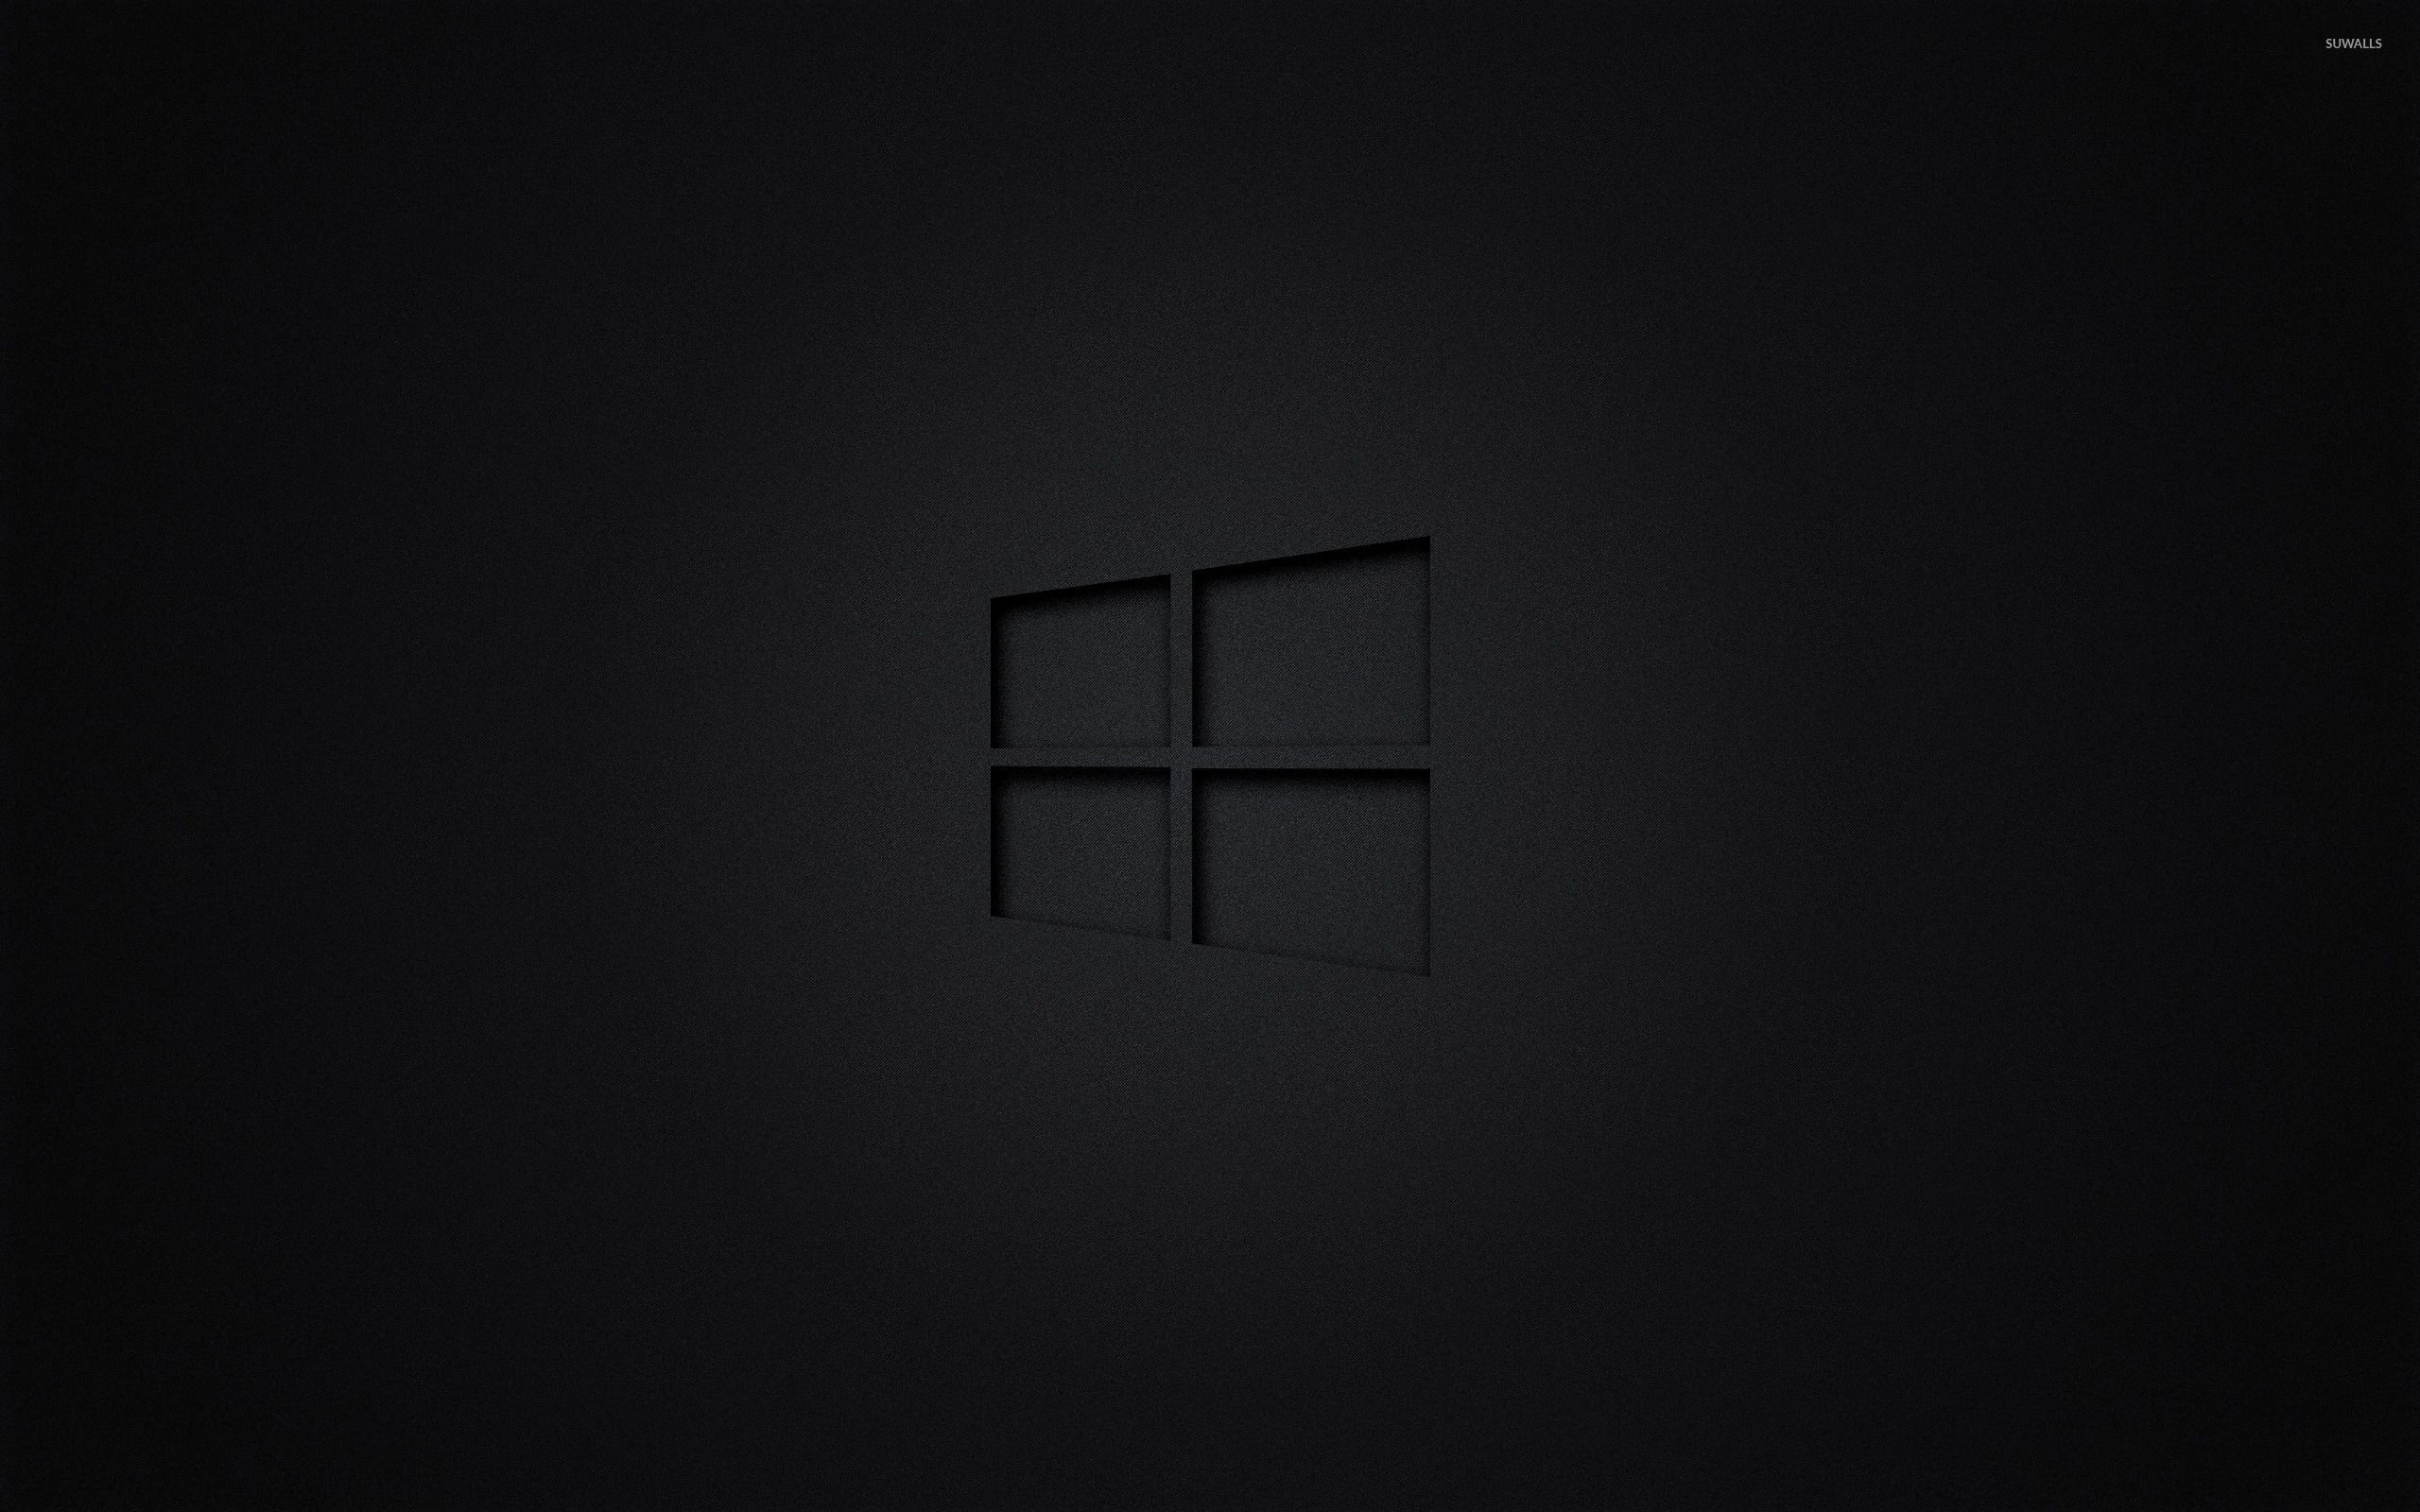 Black Windows Logo Logodix